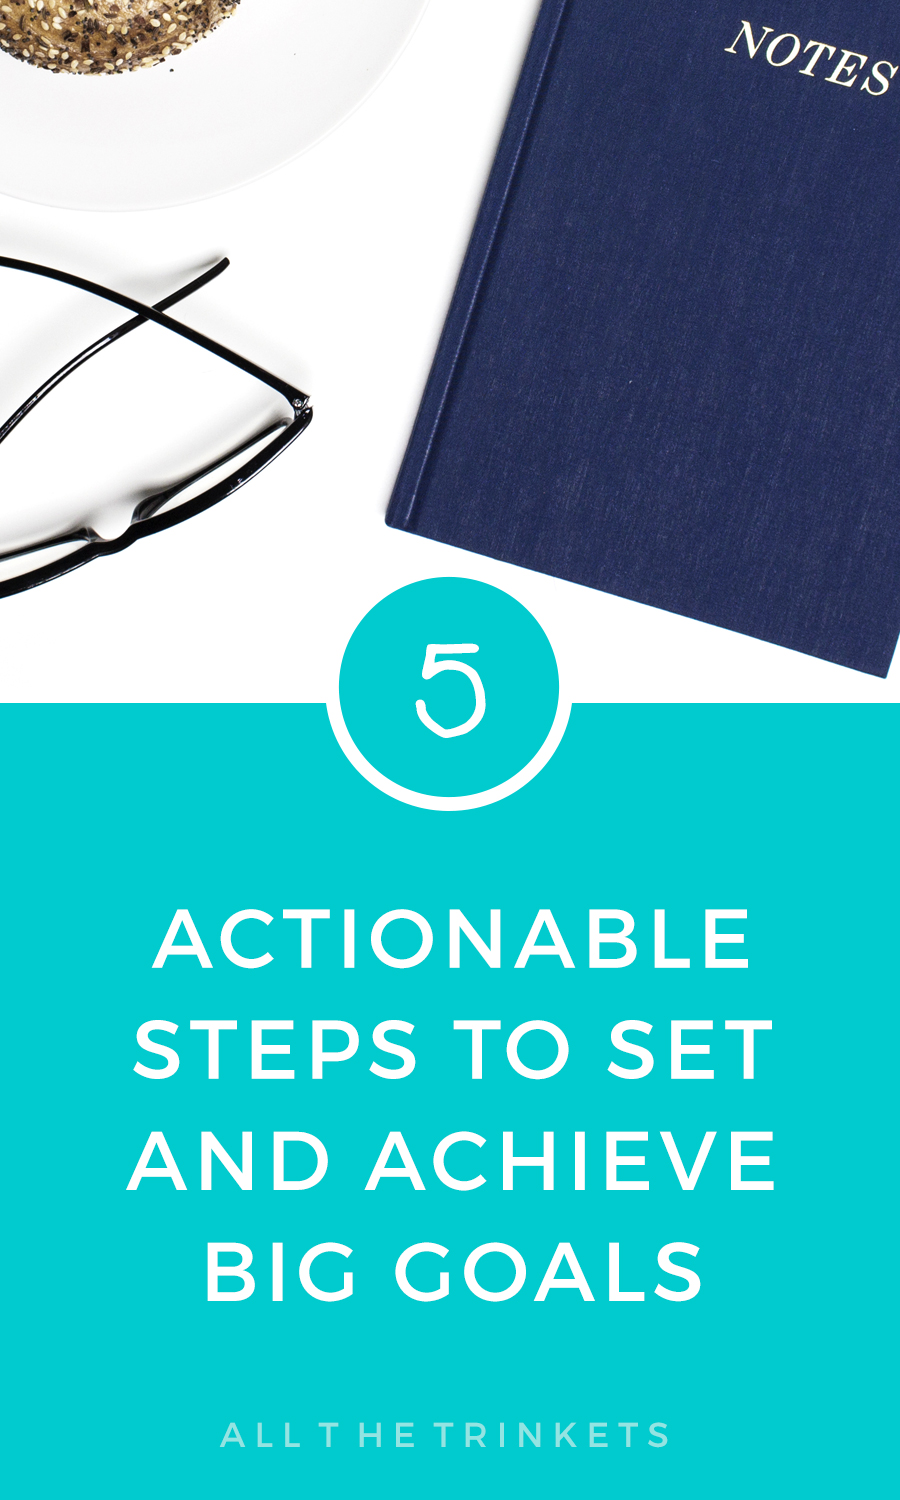 We all love to set big goals for ourselves. The problem lies in achieving them. Here are 5 actionable steps to set and achieve the big goals. #goalplanning #goals